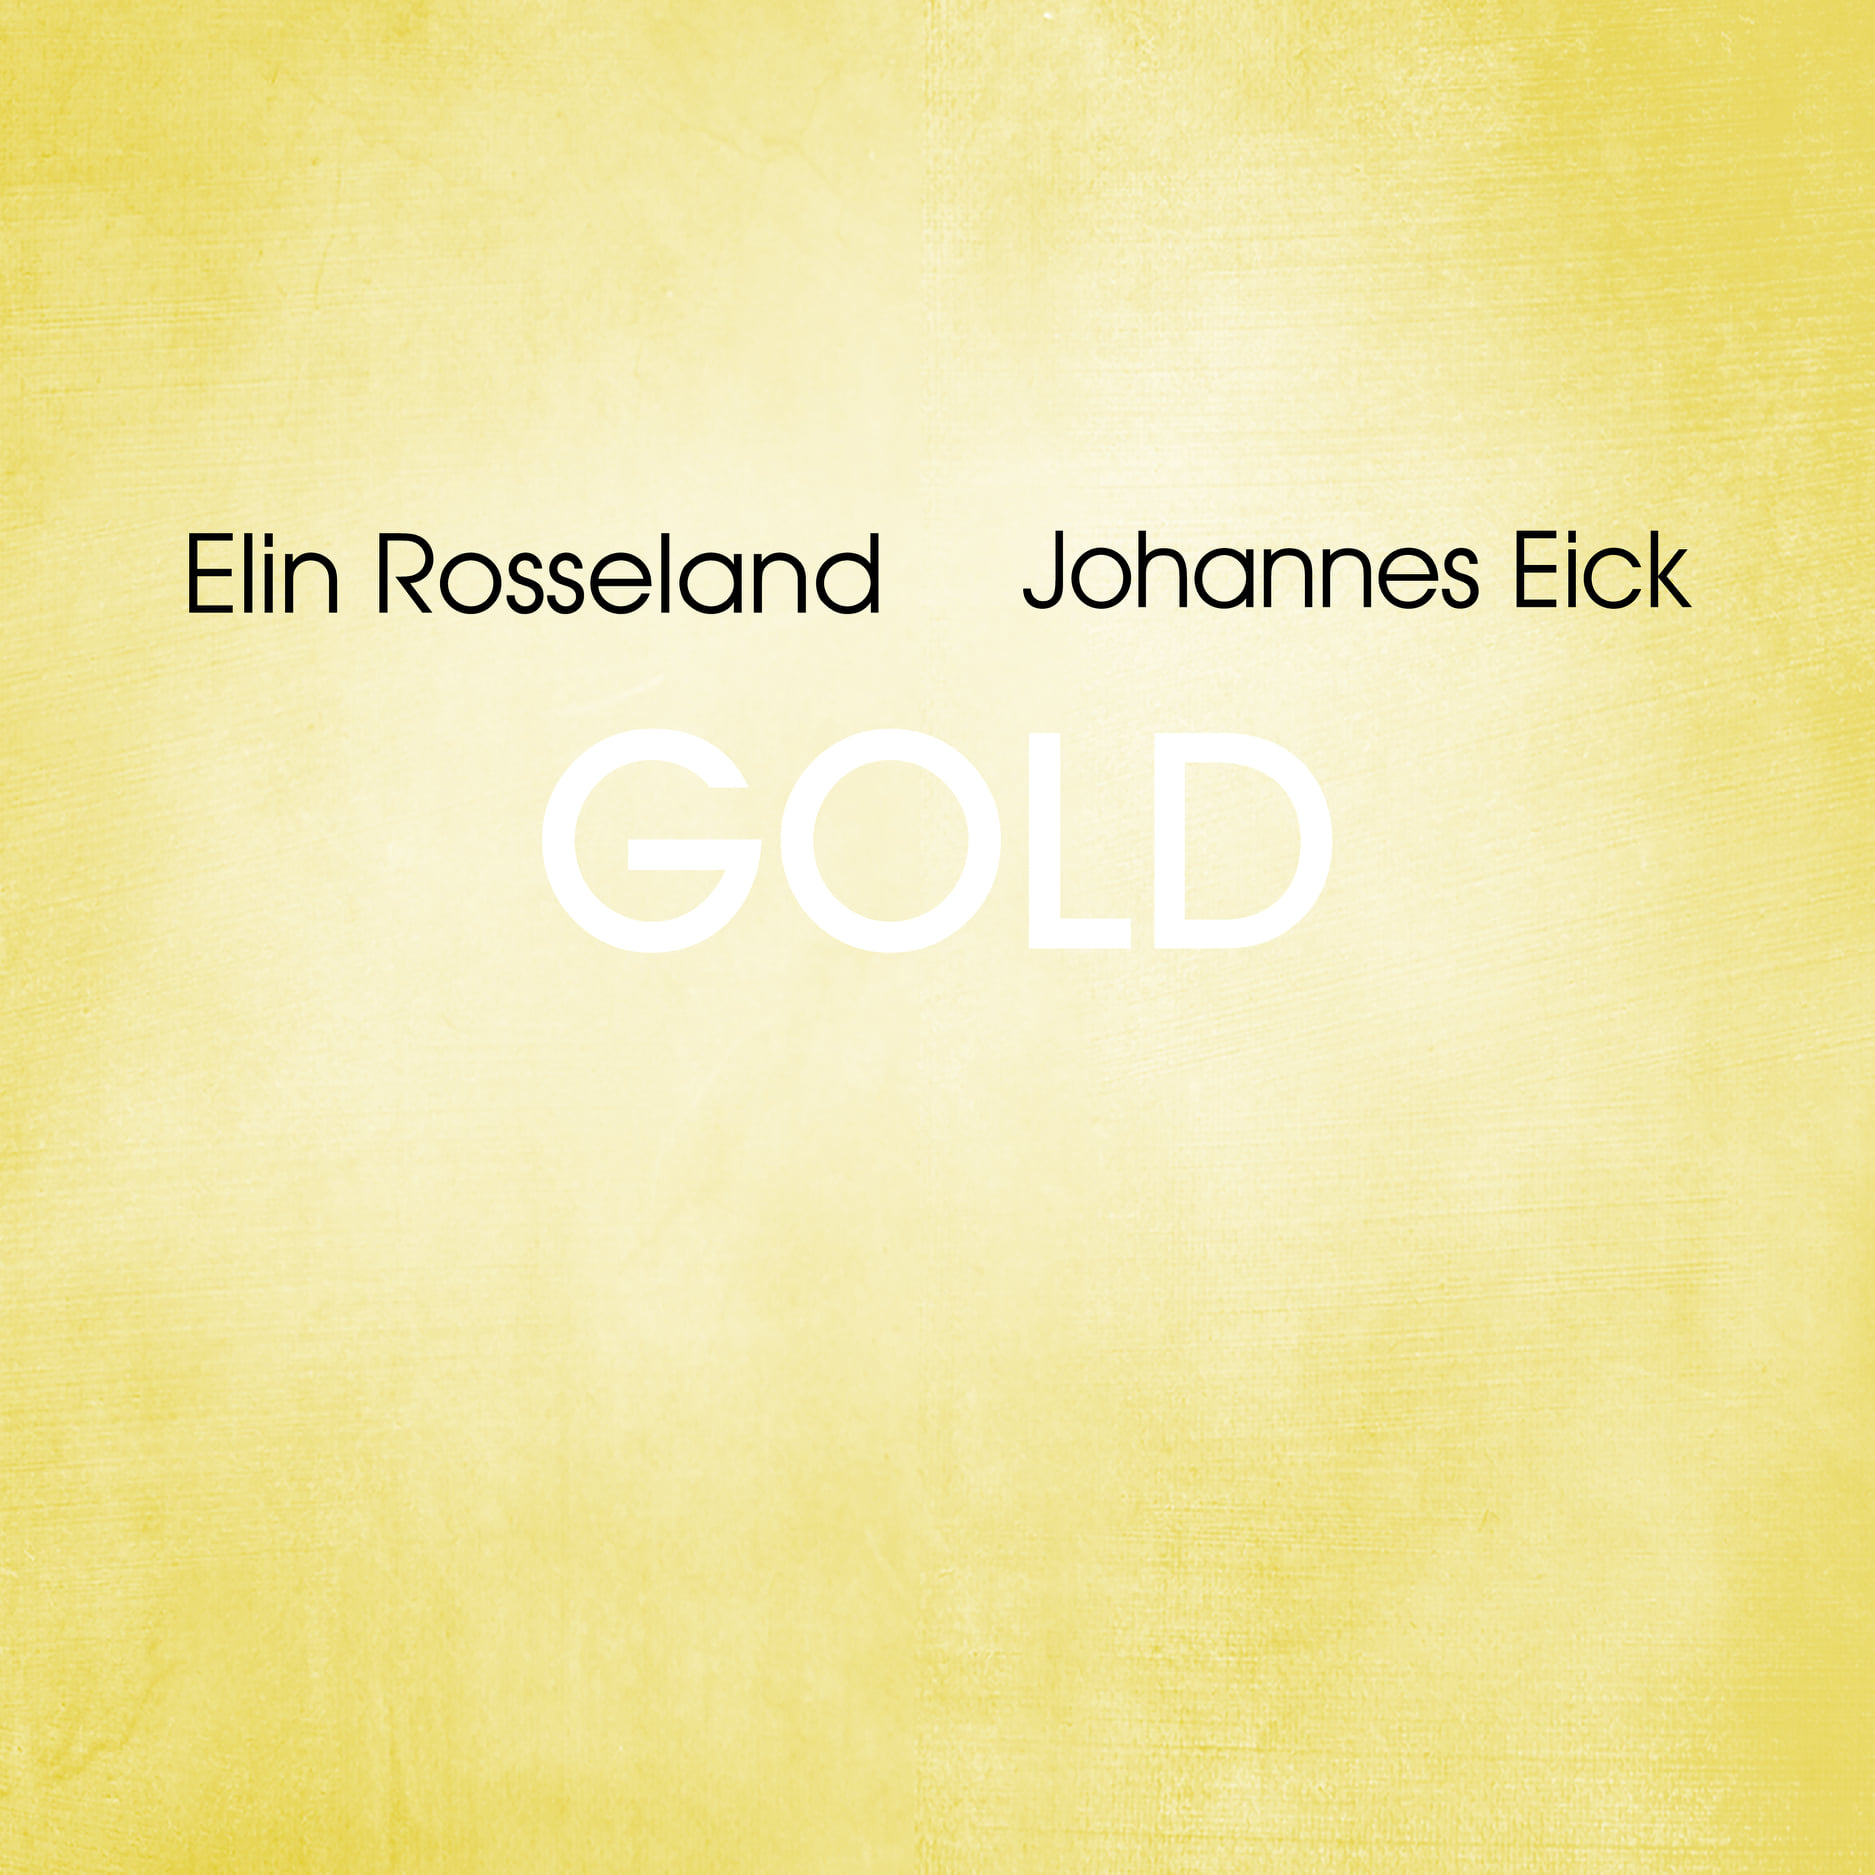 elin rosseland,johannes eick duo ny plate release 18.sept 2020 : GOLD